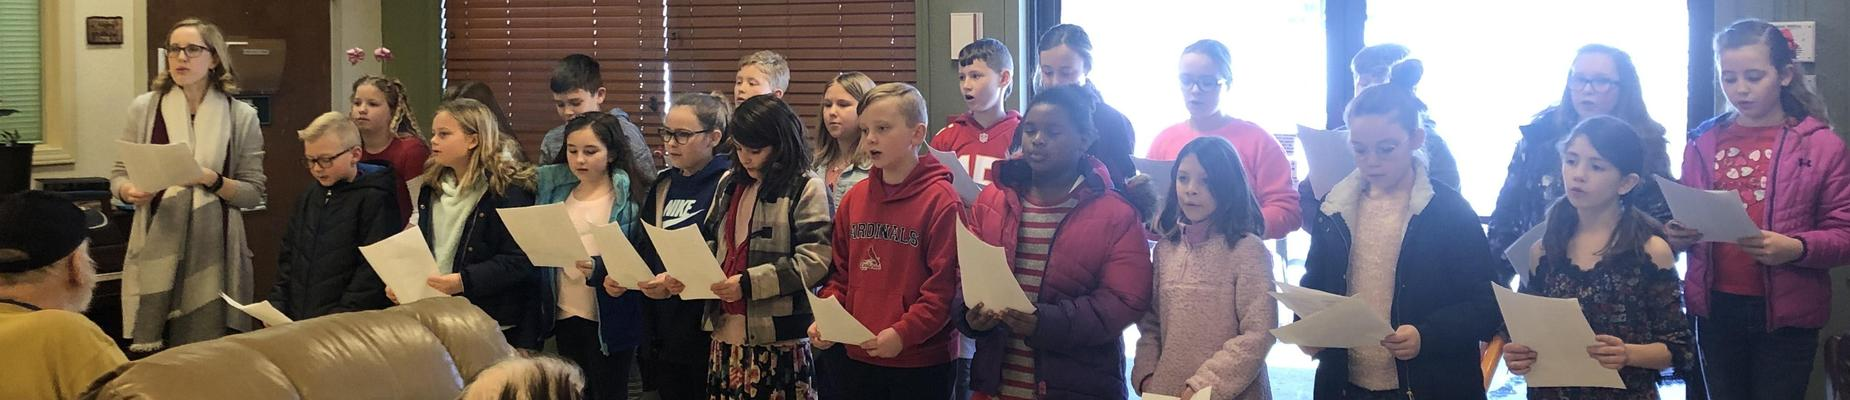 Group of kids singing at nursing home